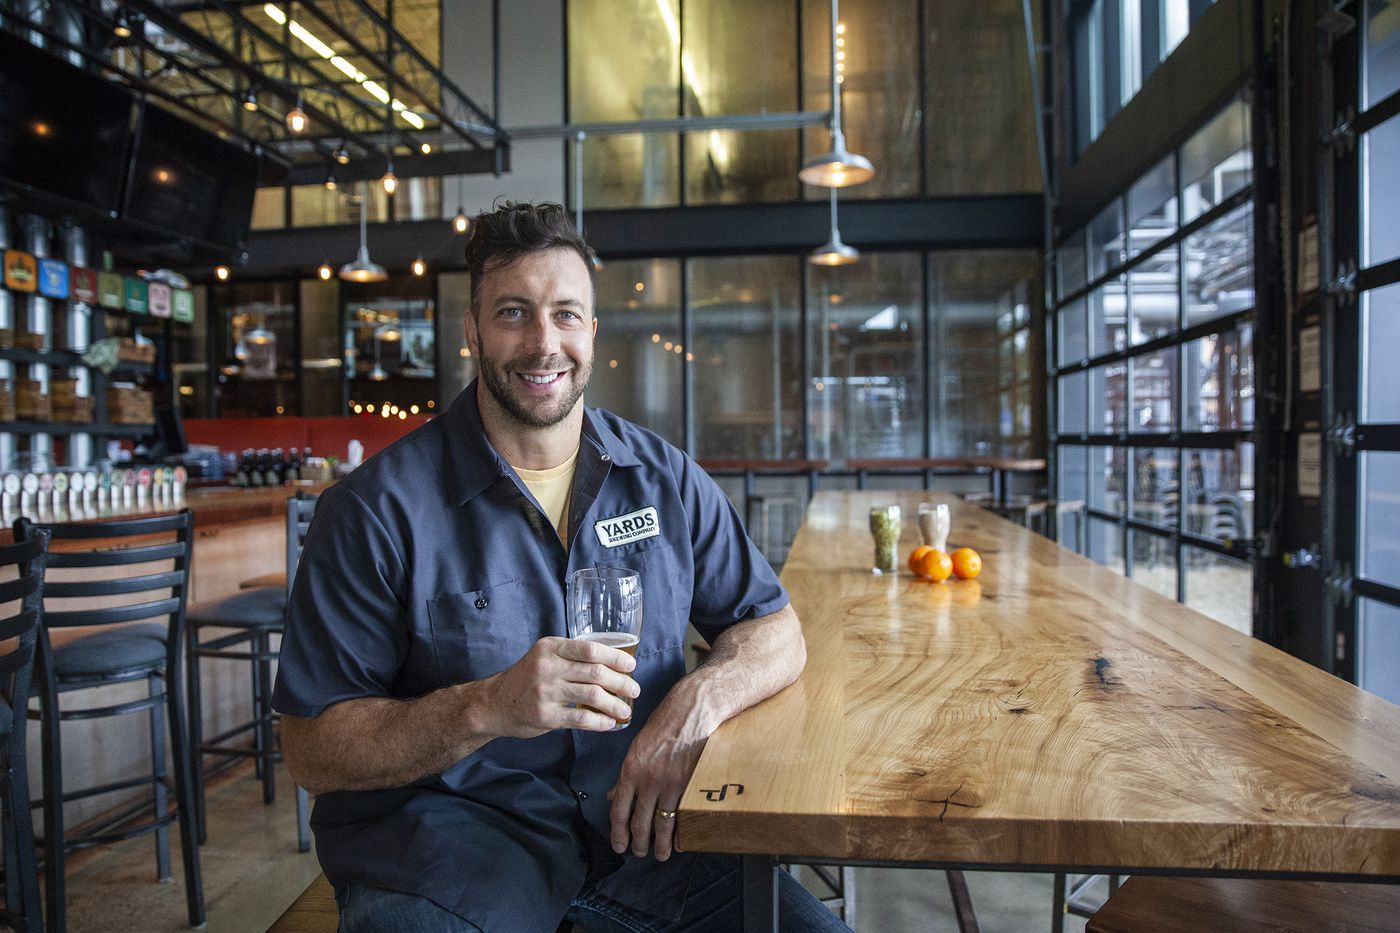 Former Philadelphia Eagles linebacker Connor Barwin and Yards Brewing Company team up on a new beer